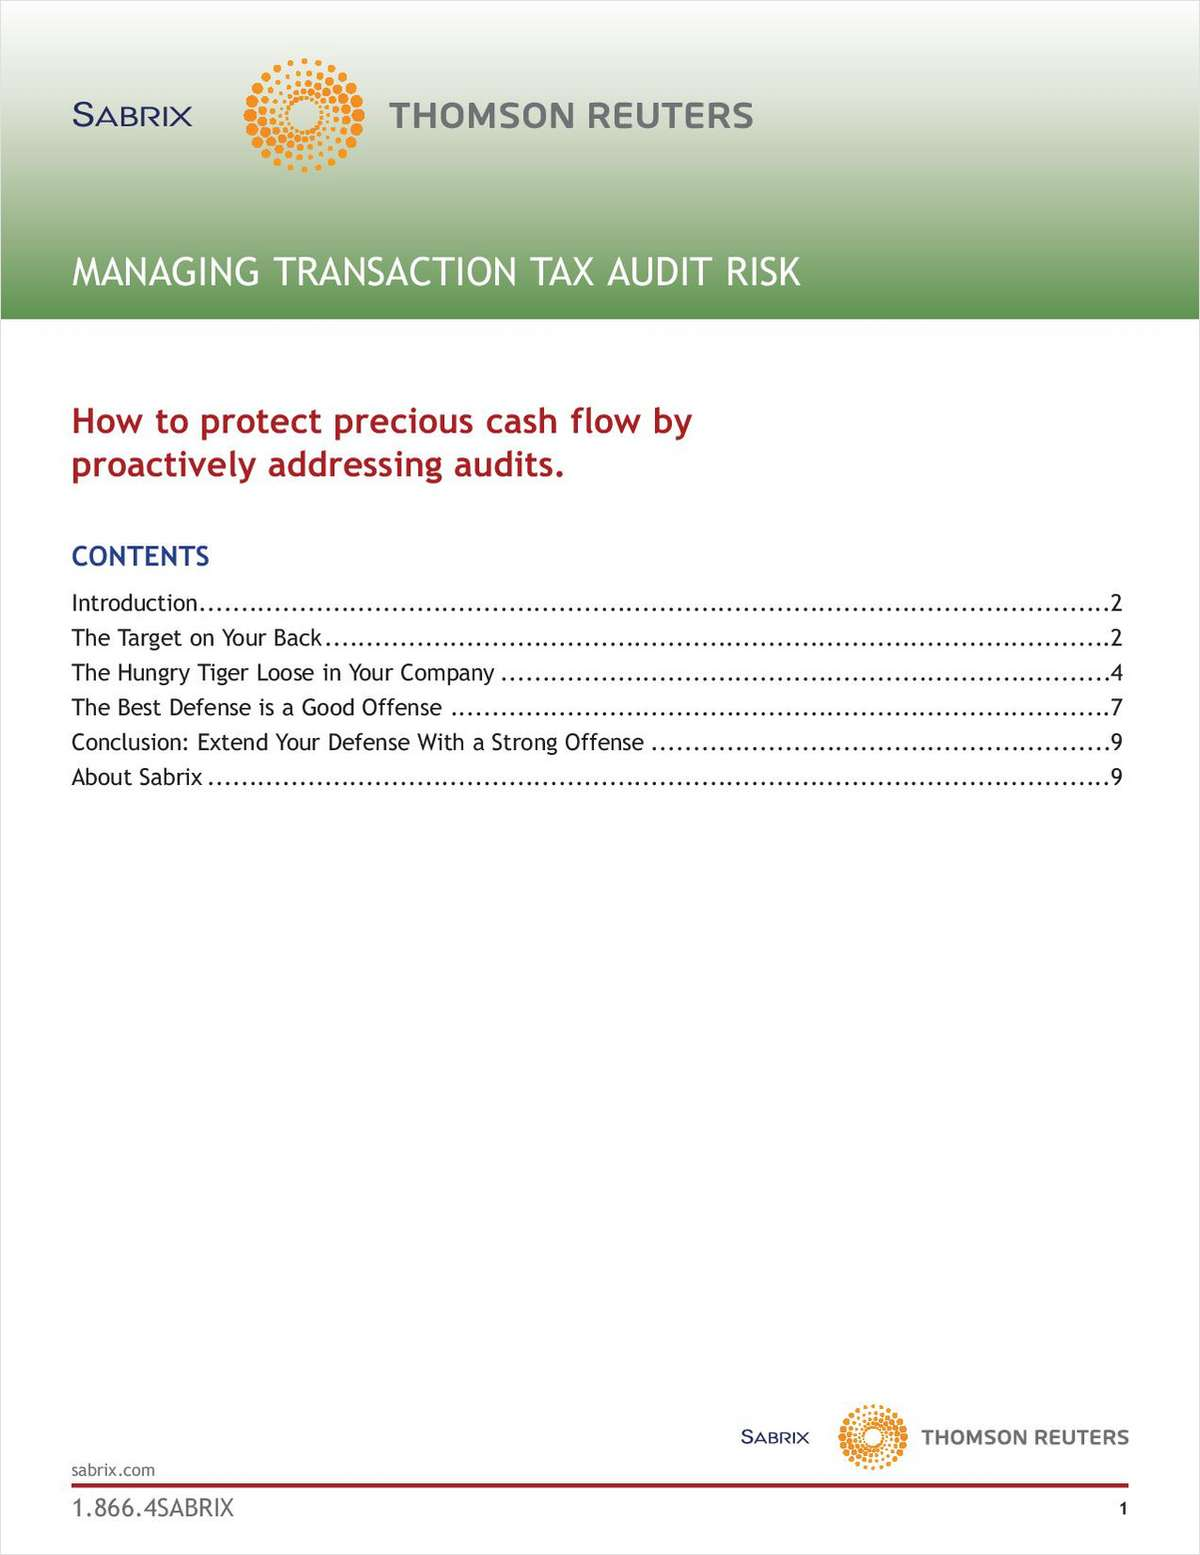 Managing Transaction Tax Audit Risk